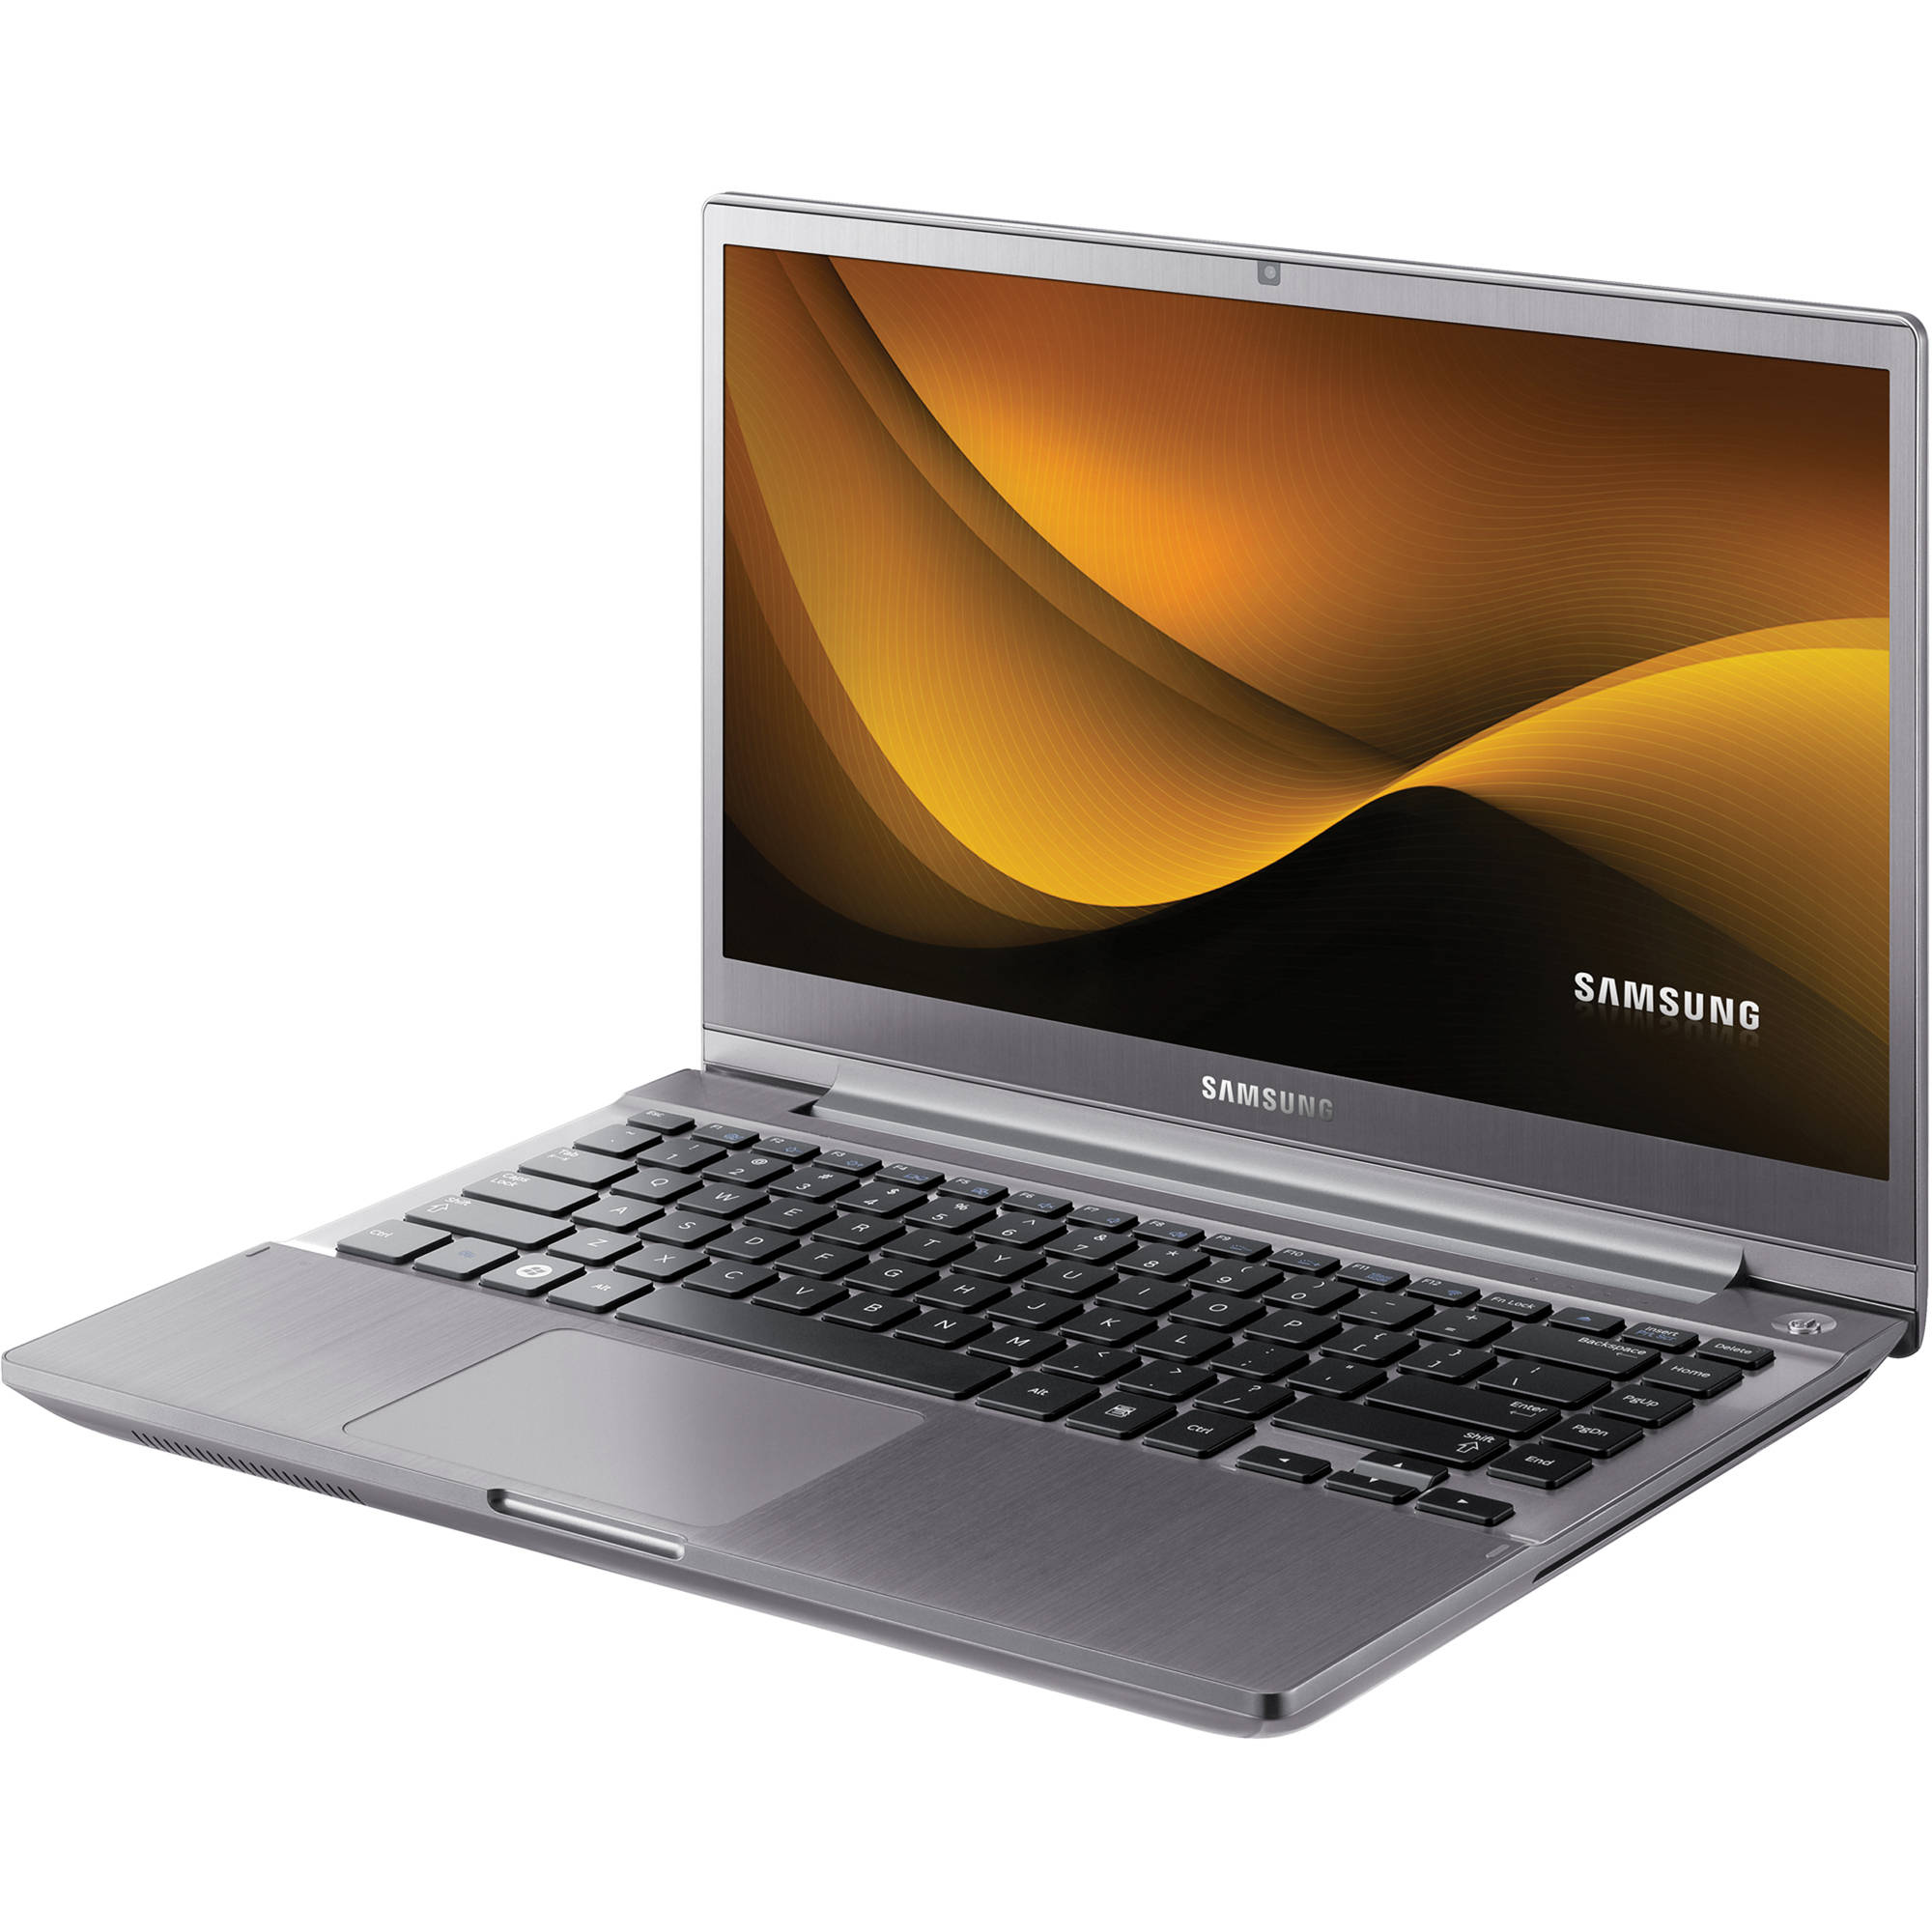 SAMSUNG NP700Z3A-S06US WINDOWS 10 DRIVER